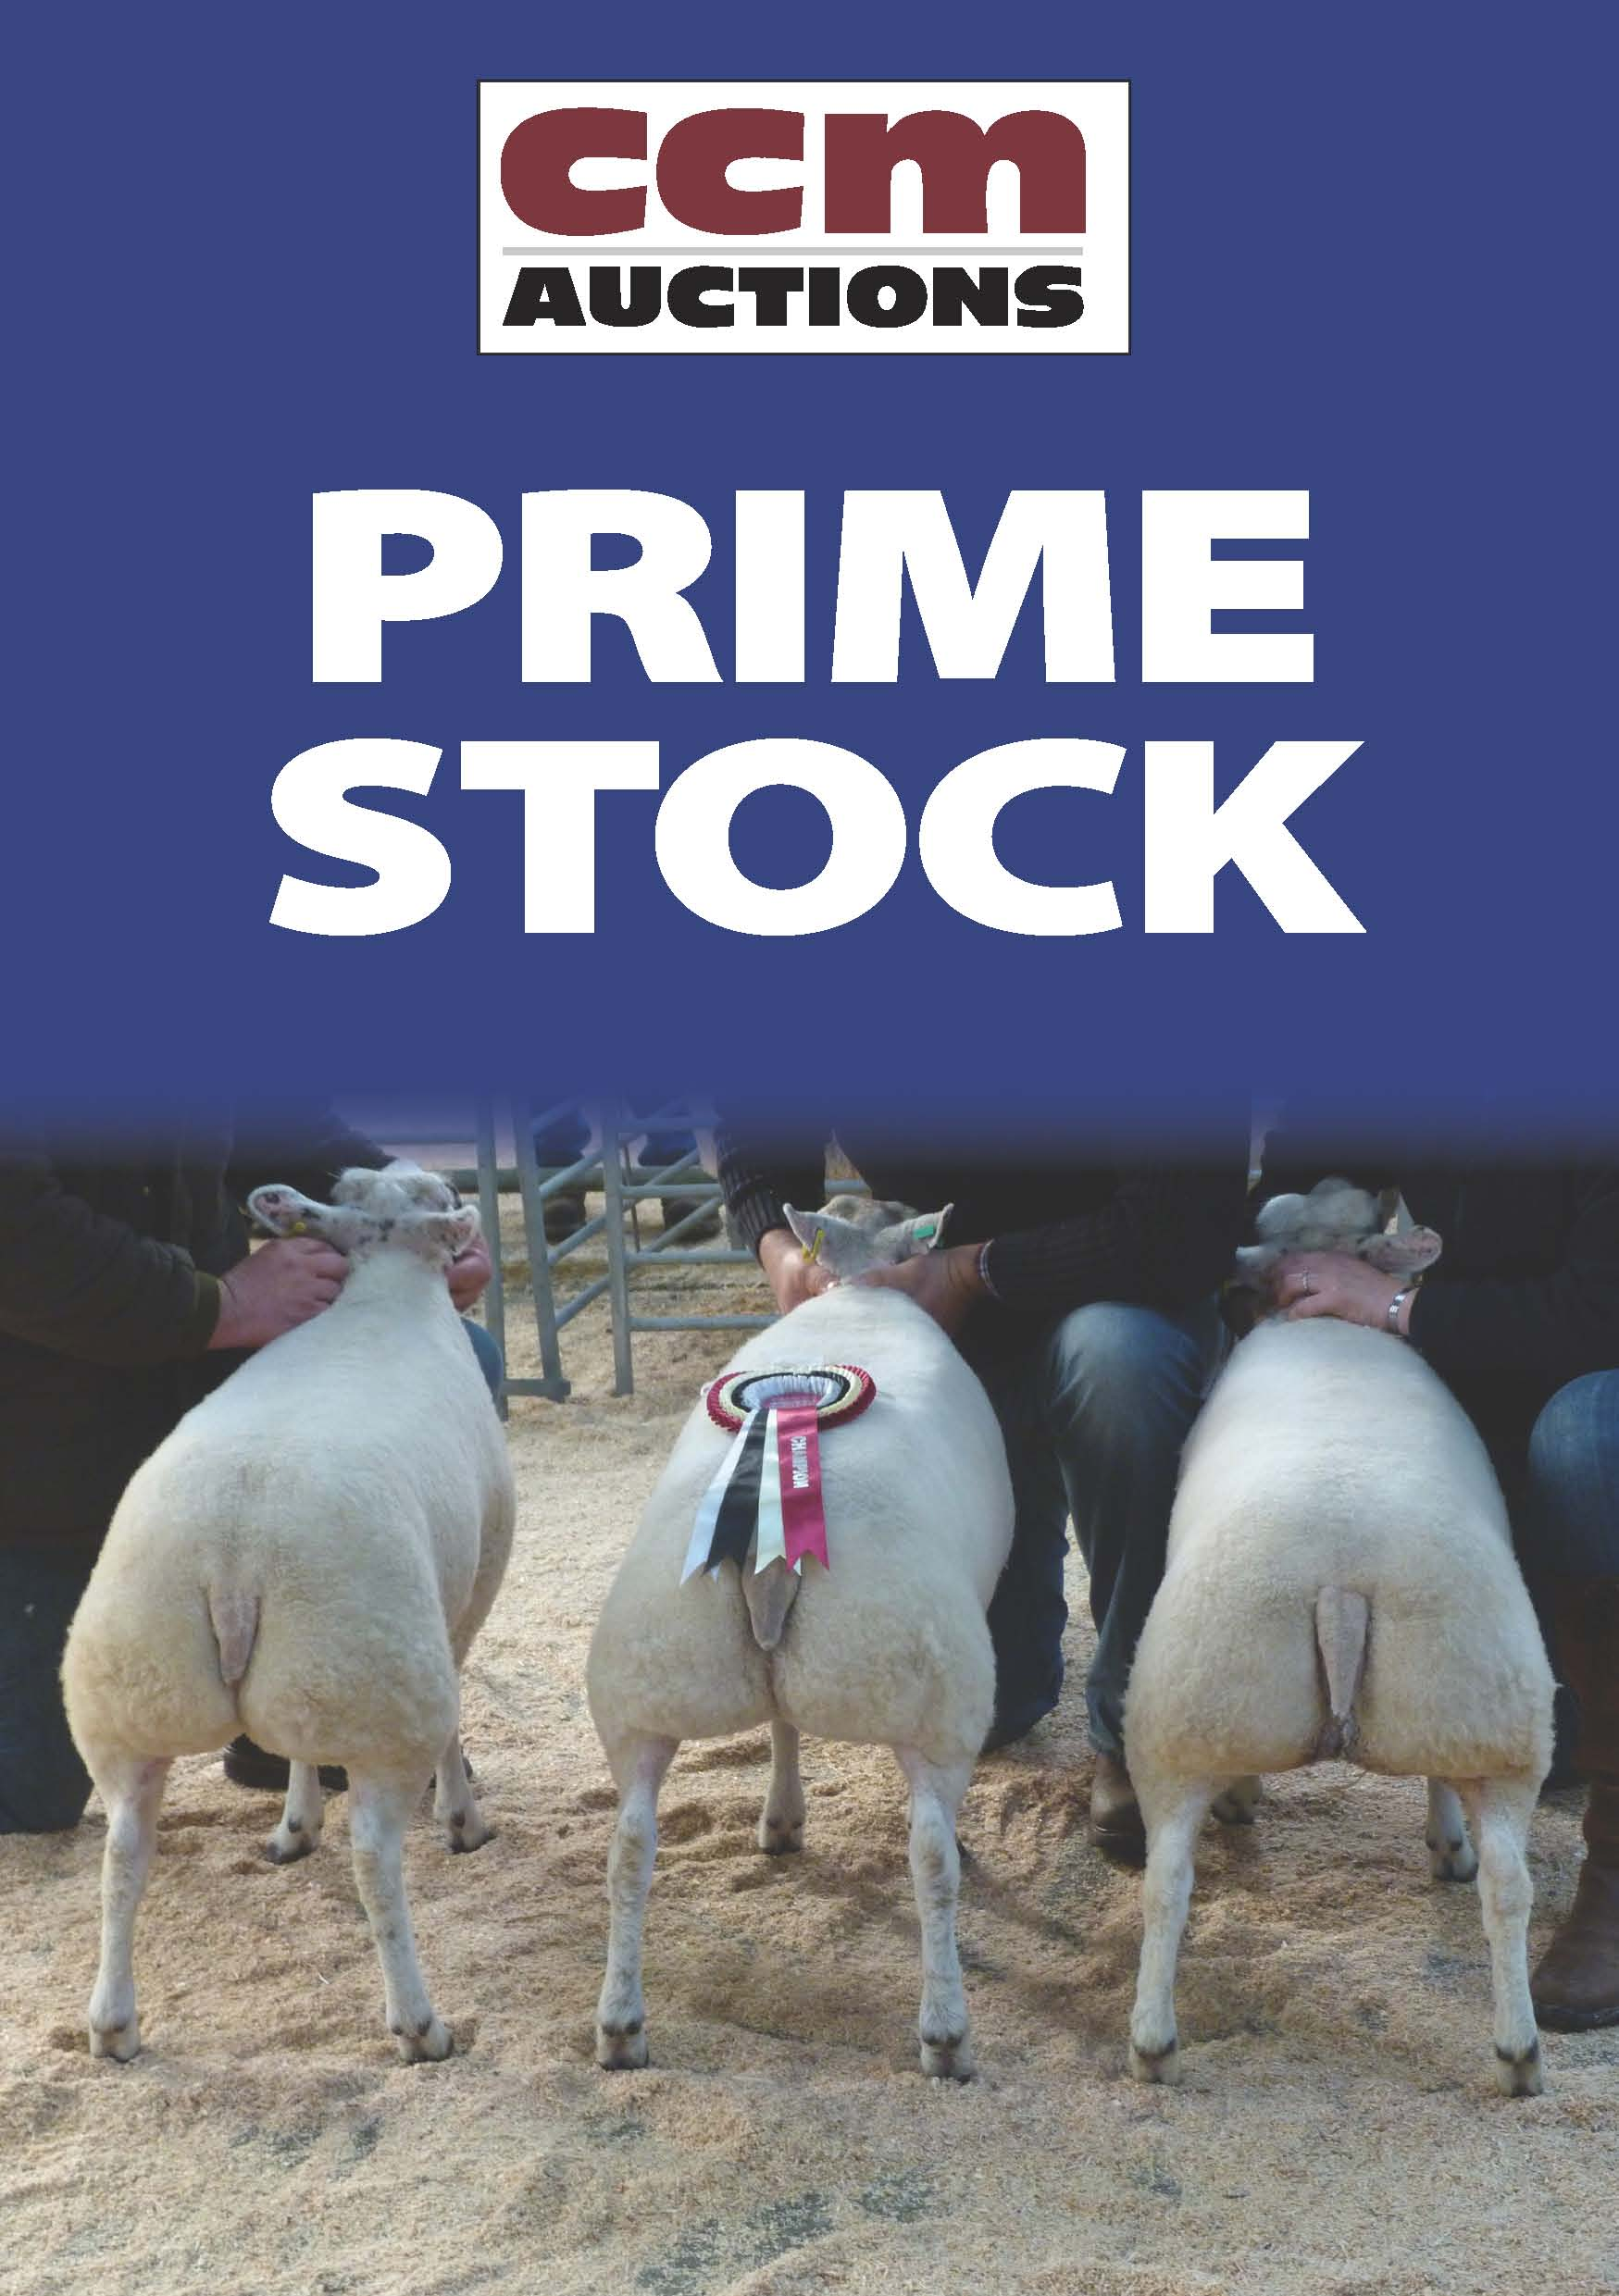 PRIMESTOCK - MONDAY 12TH OCTOBER 2015